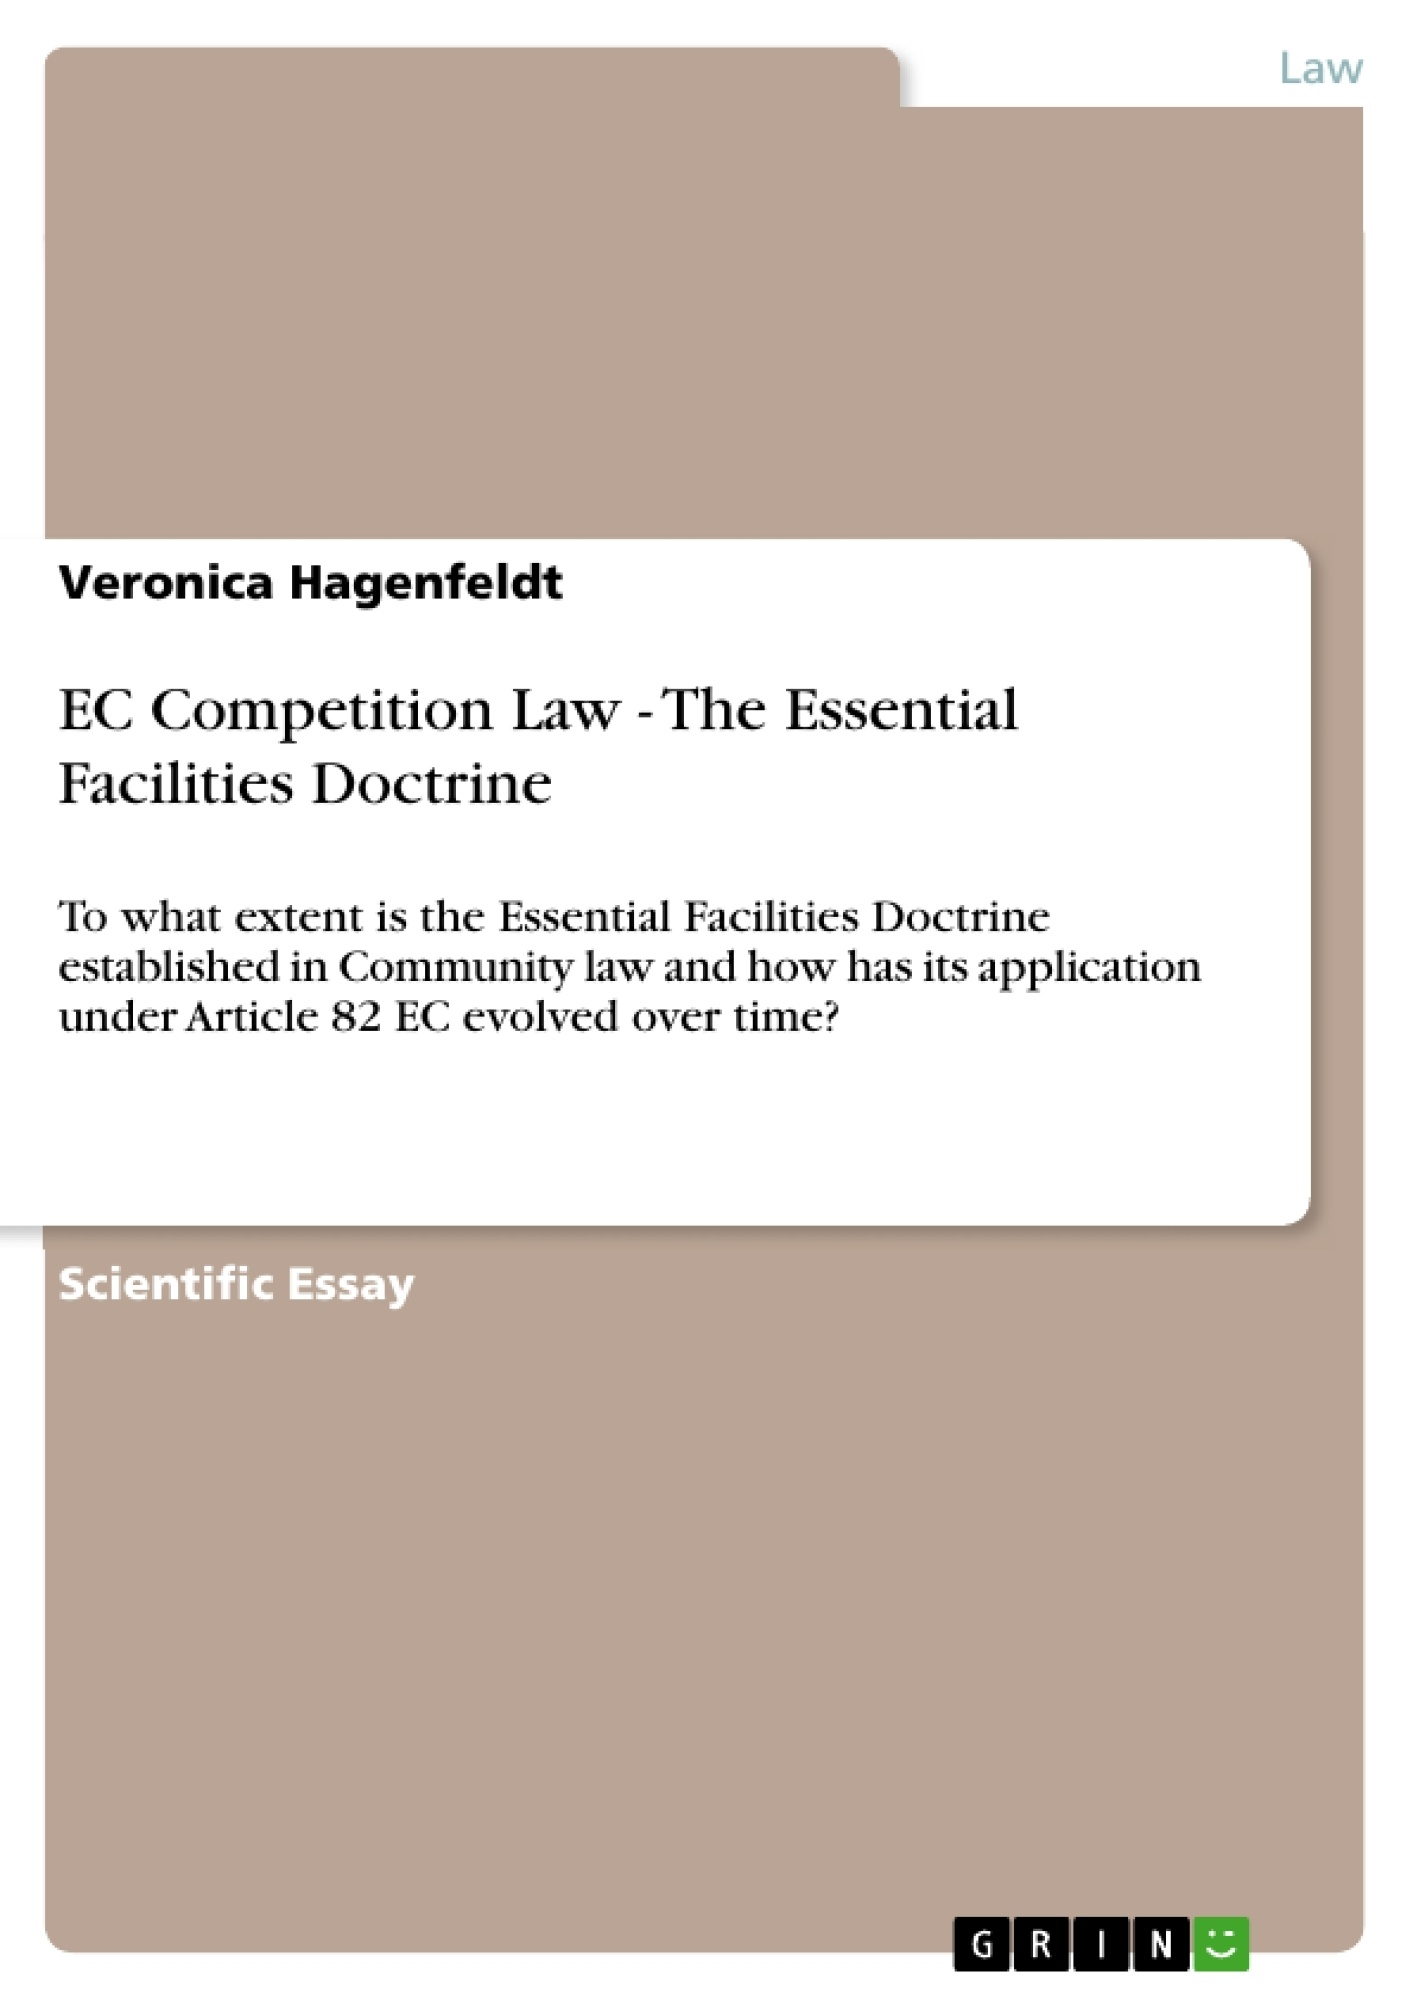 Title: EC Competition Law - The Essential Facilities Doctrine